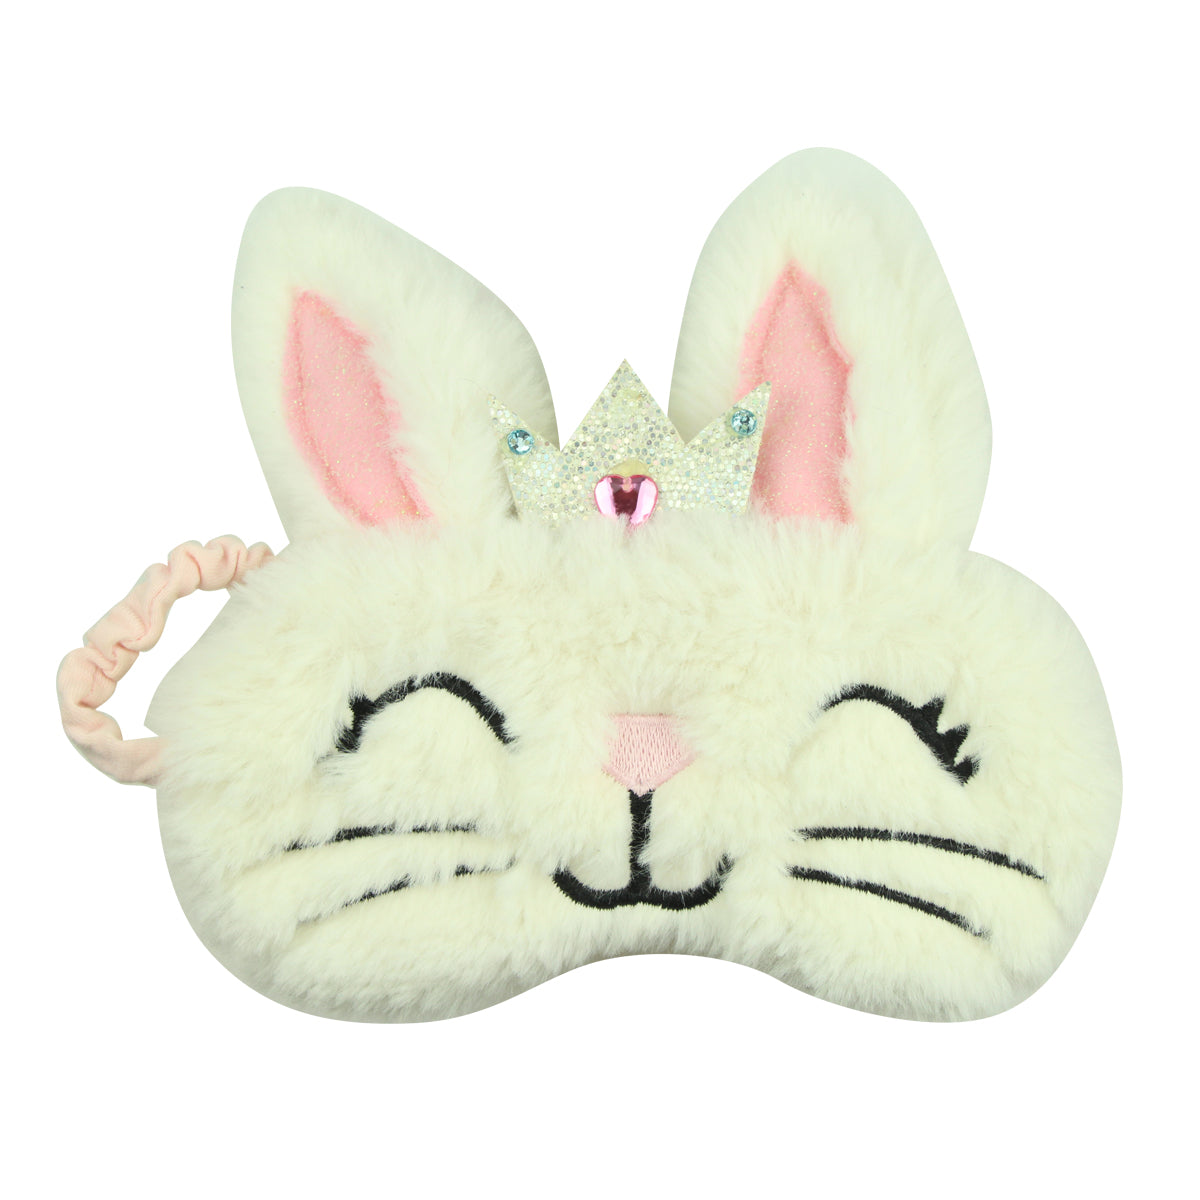 white plush bunny ears rabbit embroidery eye patches suede leather crown eye pads private label 7900 - SOHOBUCKS CO.,LIMITED